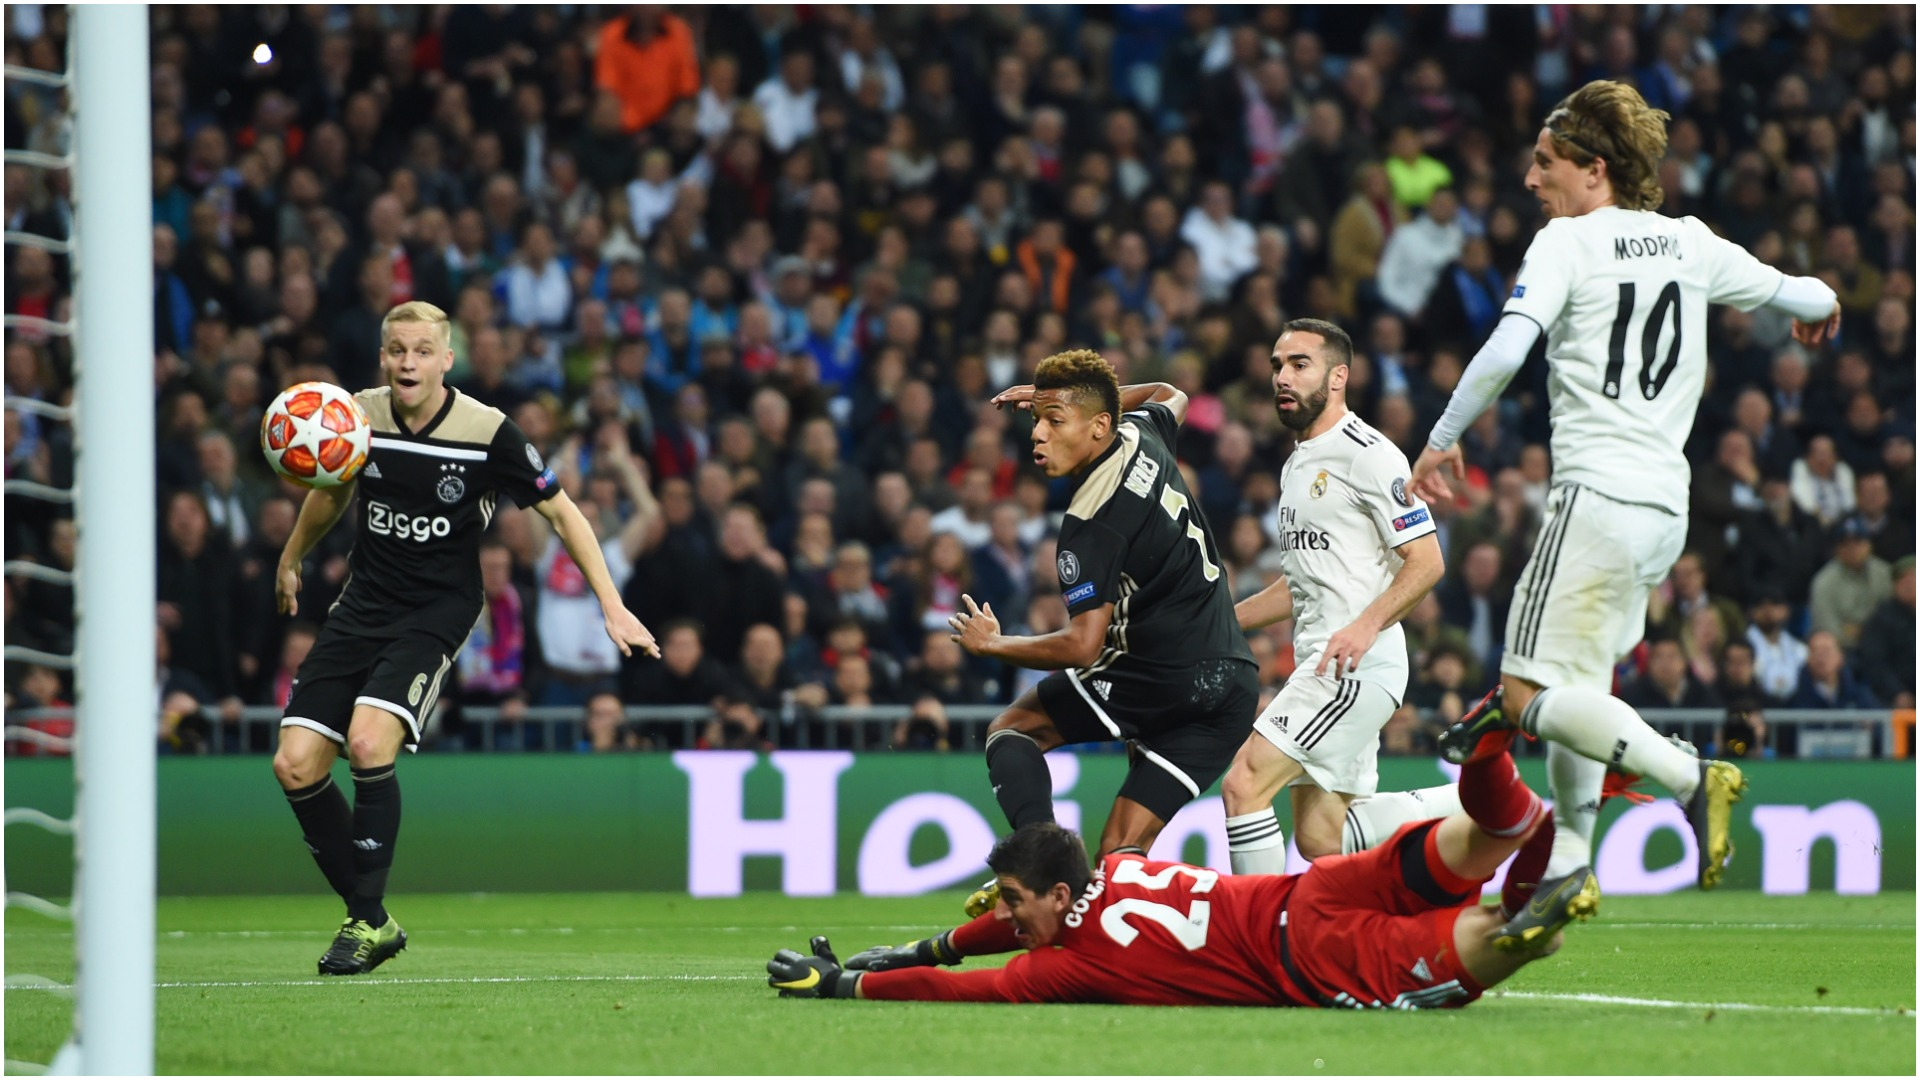 Real Madrid v Ajax Match Report, 05/03/2019, UEFA Champions League